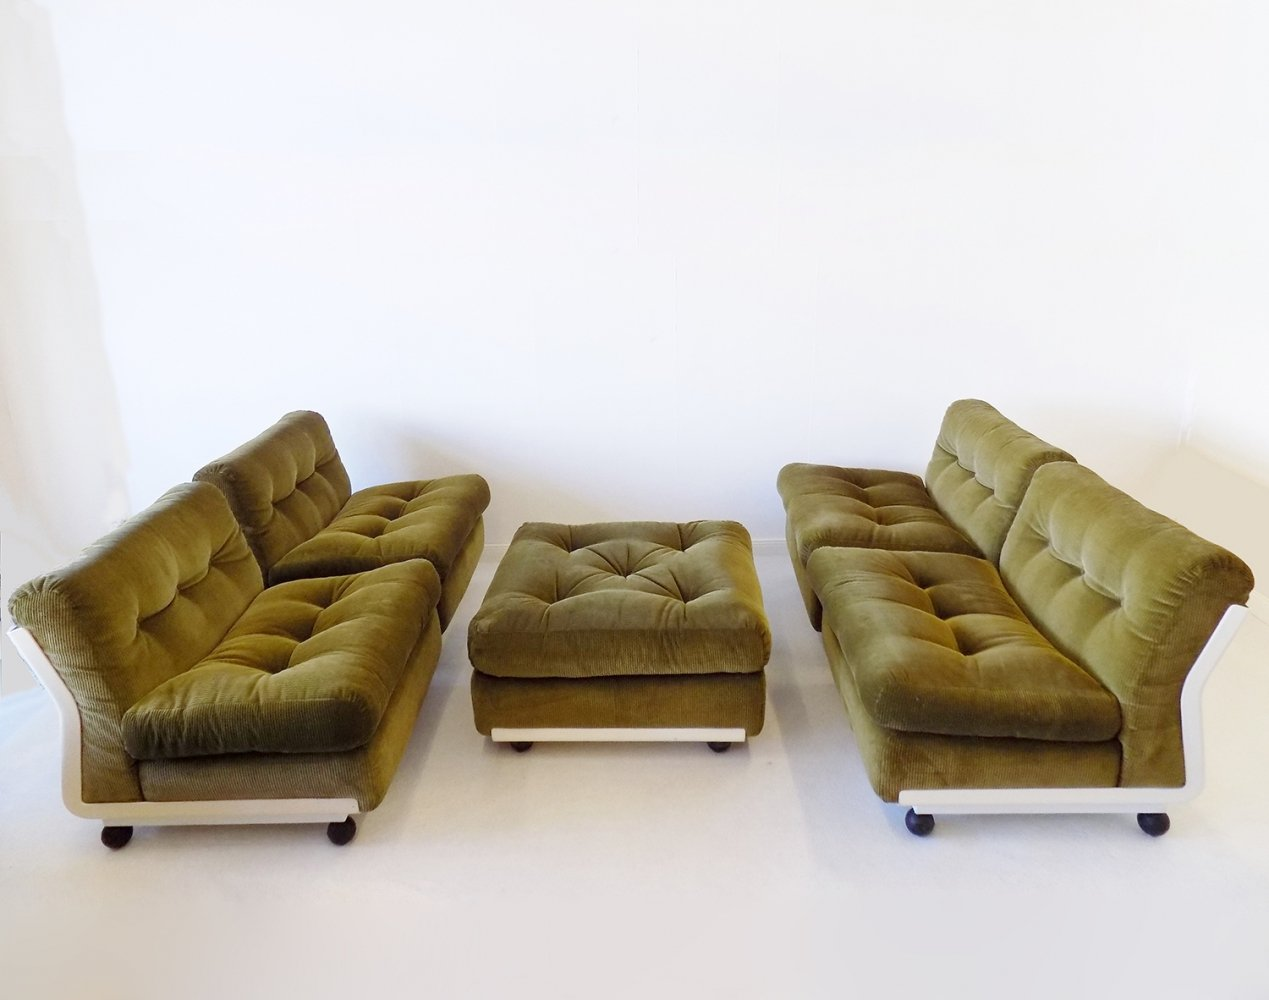 BB Italia Amanta set of 4 lounge chairs with ottoman by Mario Bellini